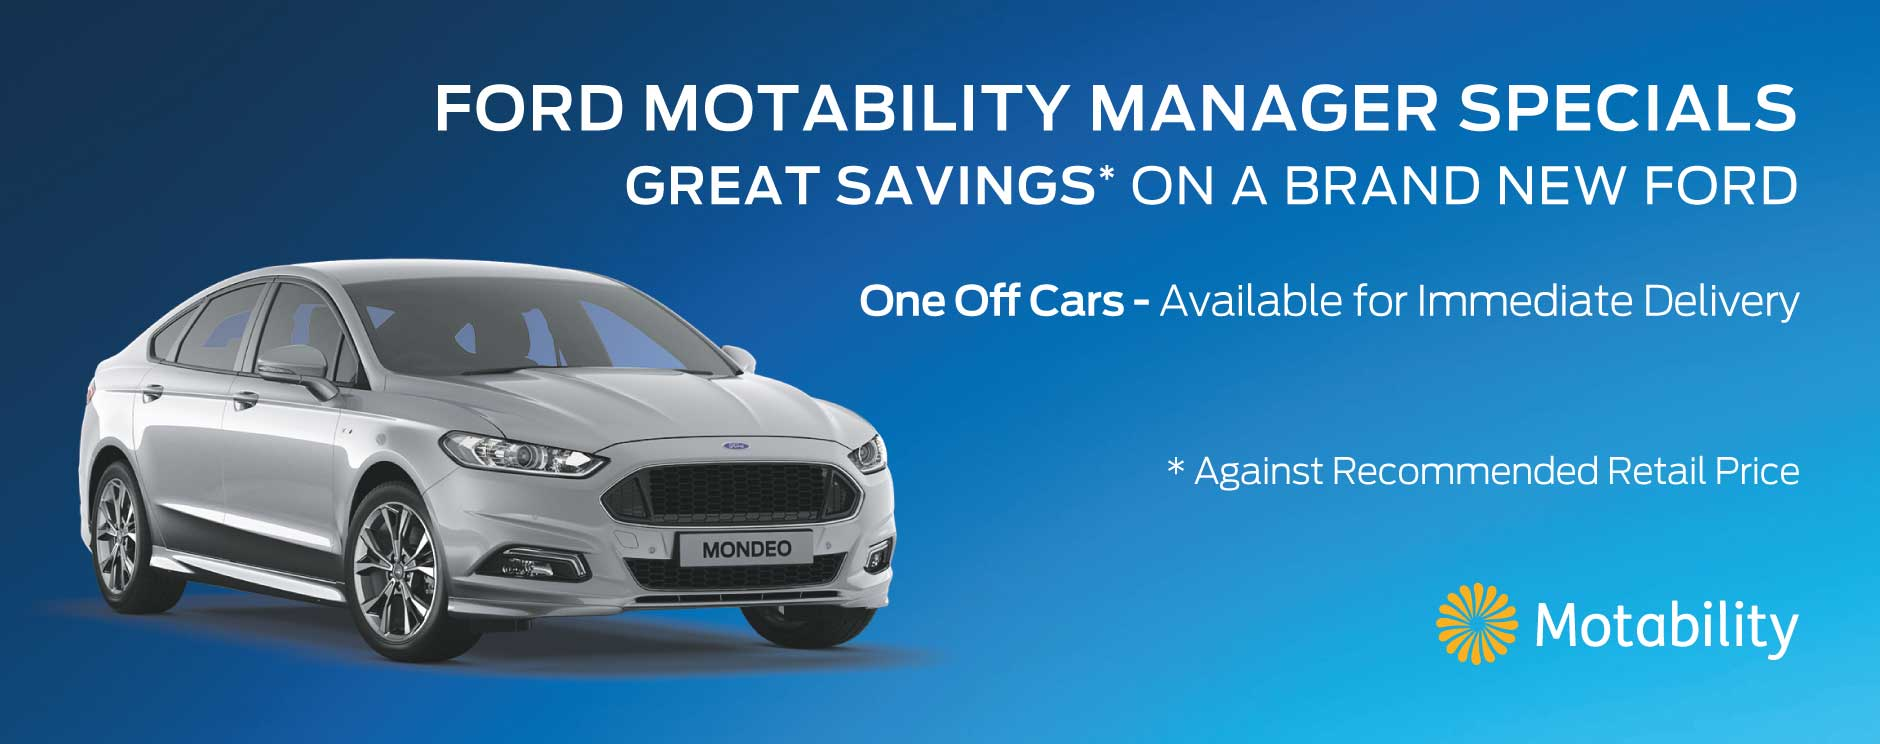 Ford Motability Manager Specials